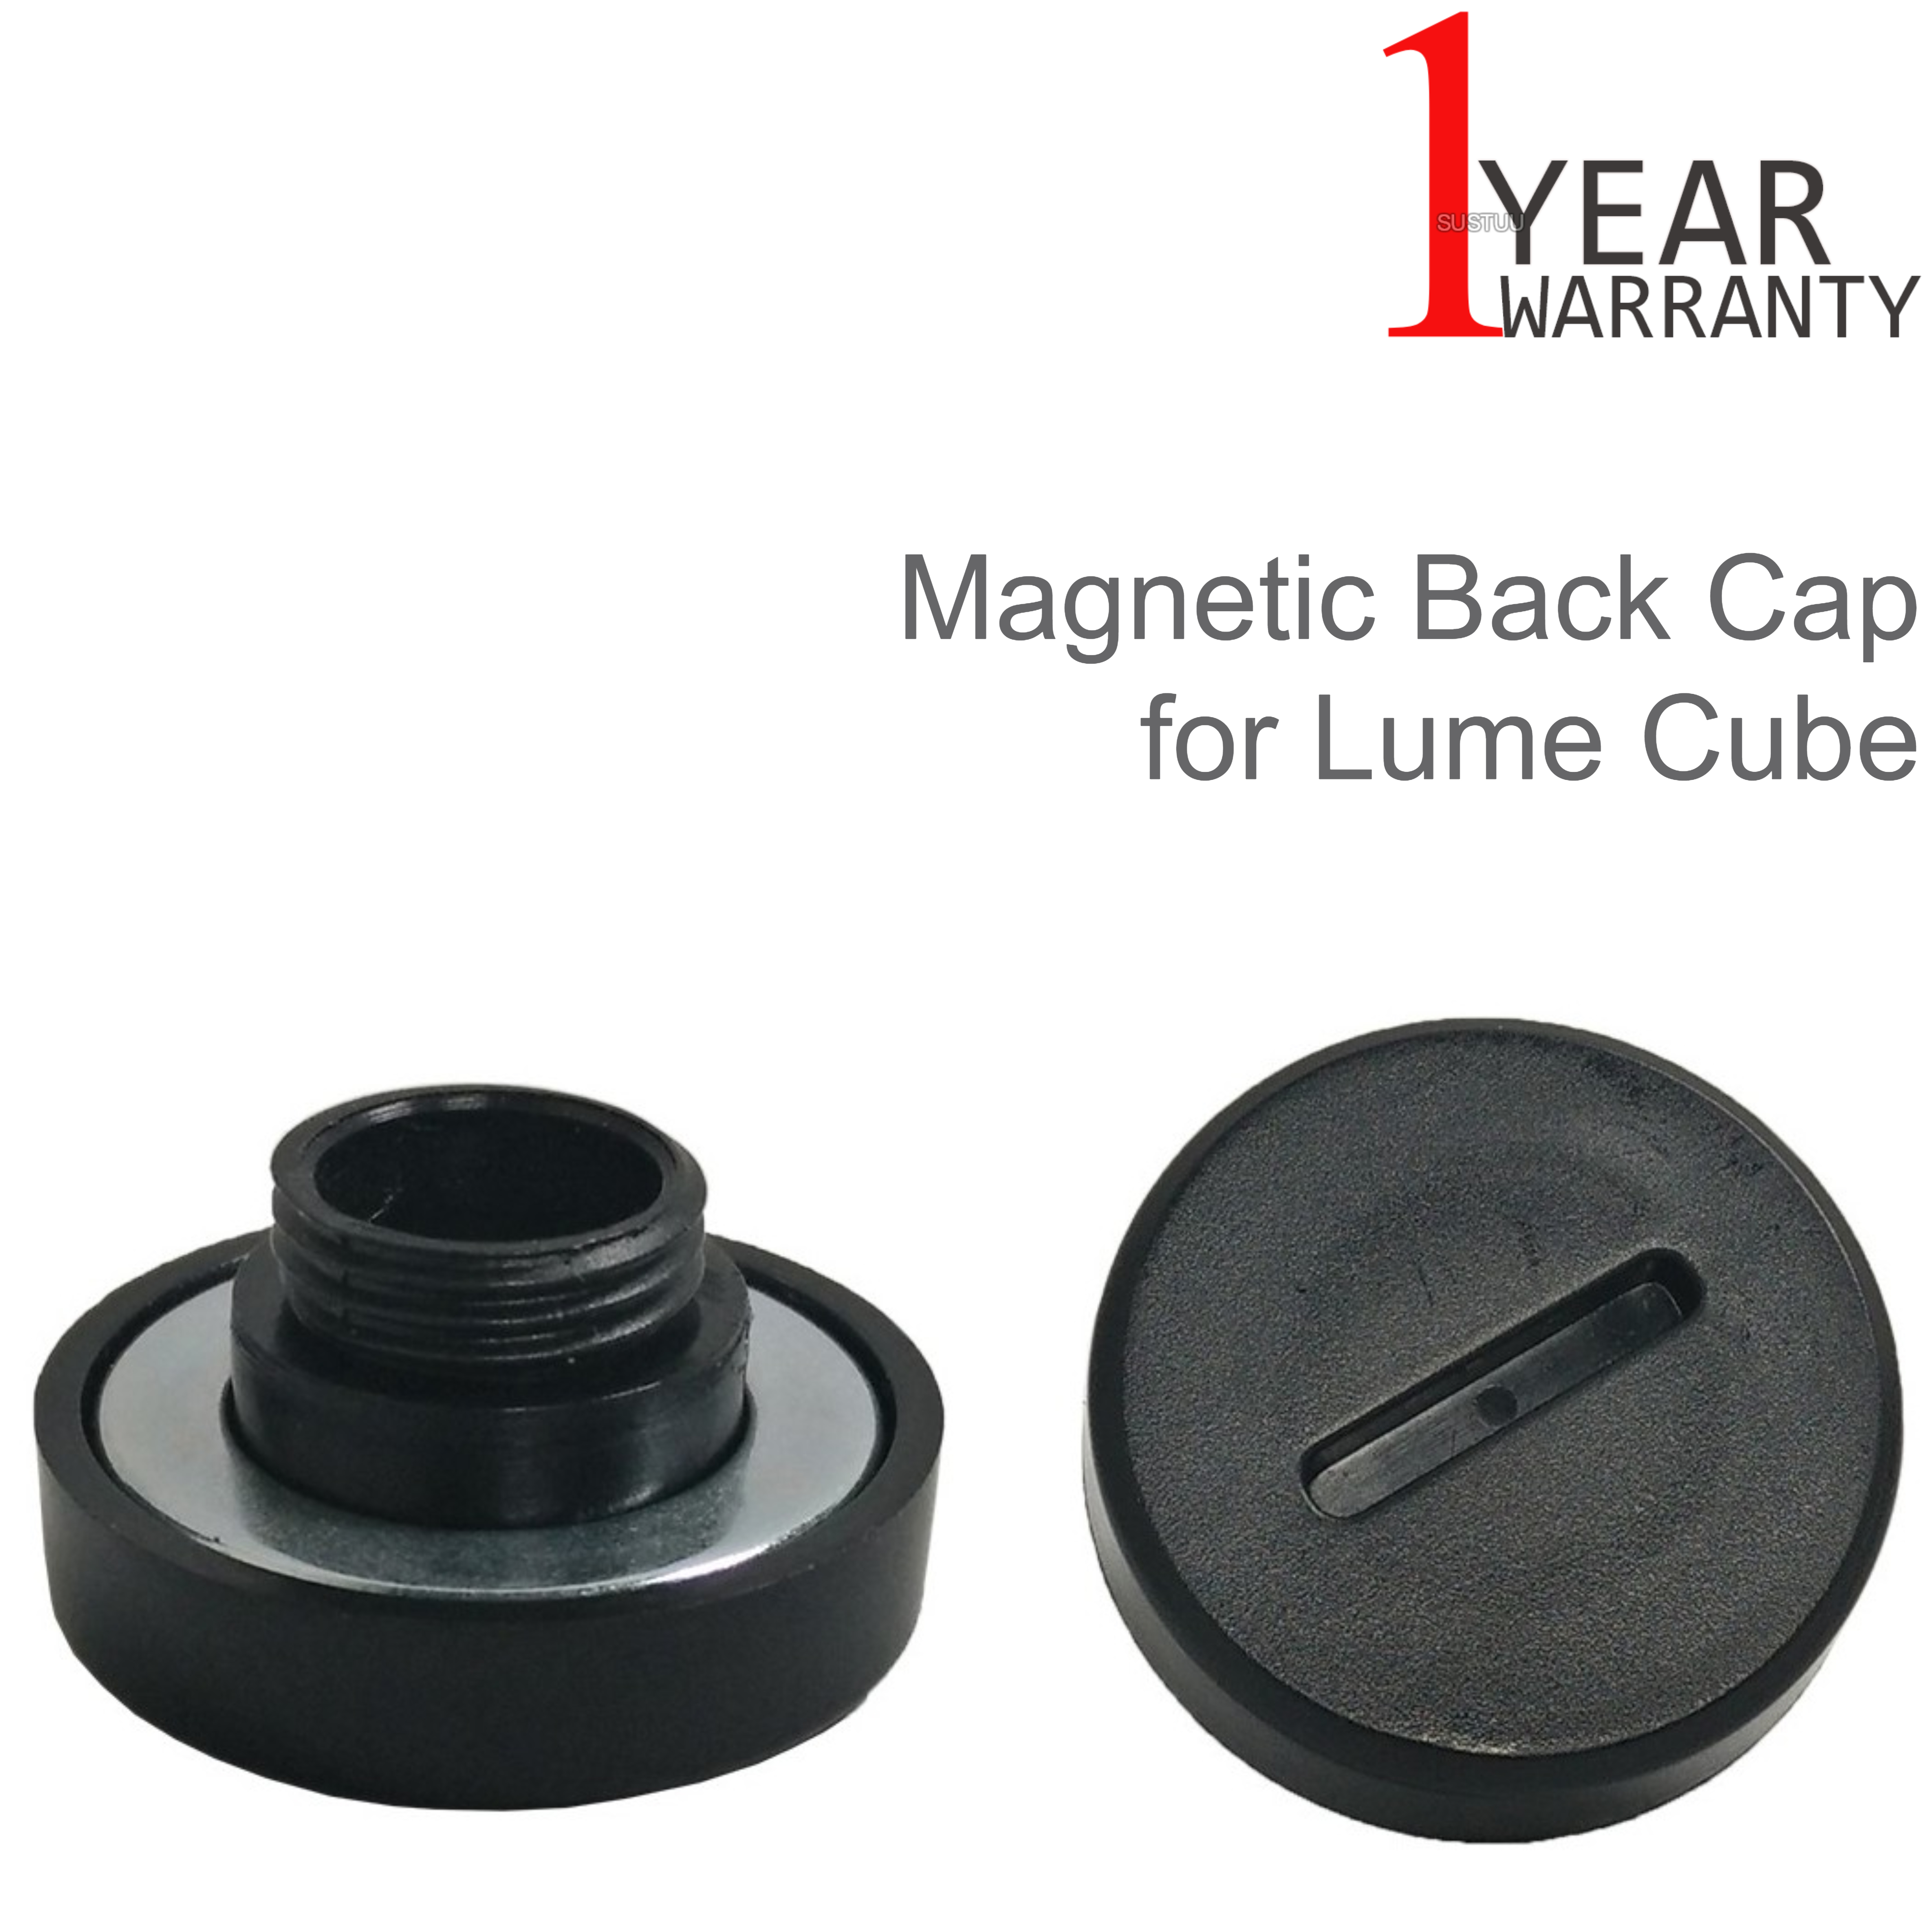 Lume Cube Magnetic Back Cap LCMC11 | Strong Cover | For Mount On Metal Surface | Black